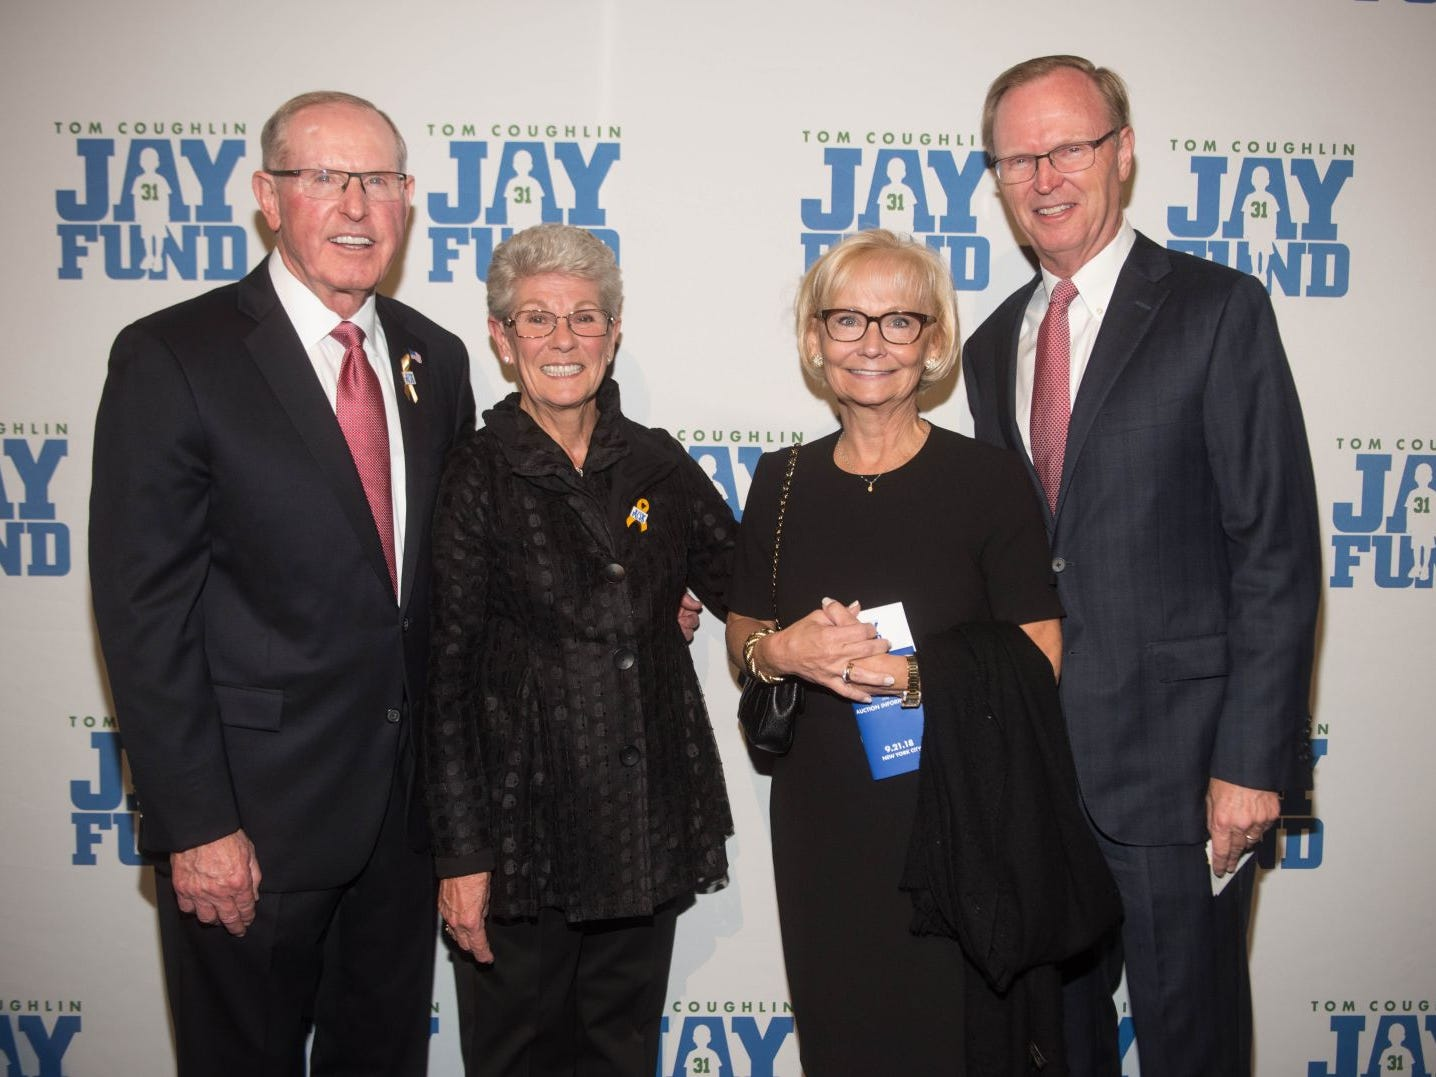 Tom Coughlin, Judy Coughlin, Denise Mara and John Mara. The 14th annual Jay Fund Champions for Children Gala was held at Cipriani 42nd Street. 09/21/2018